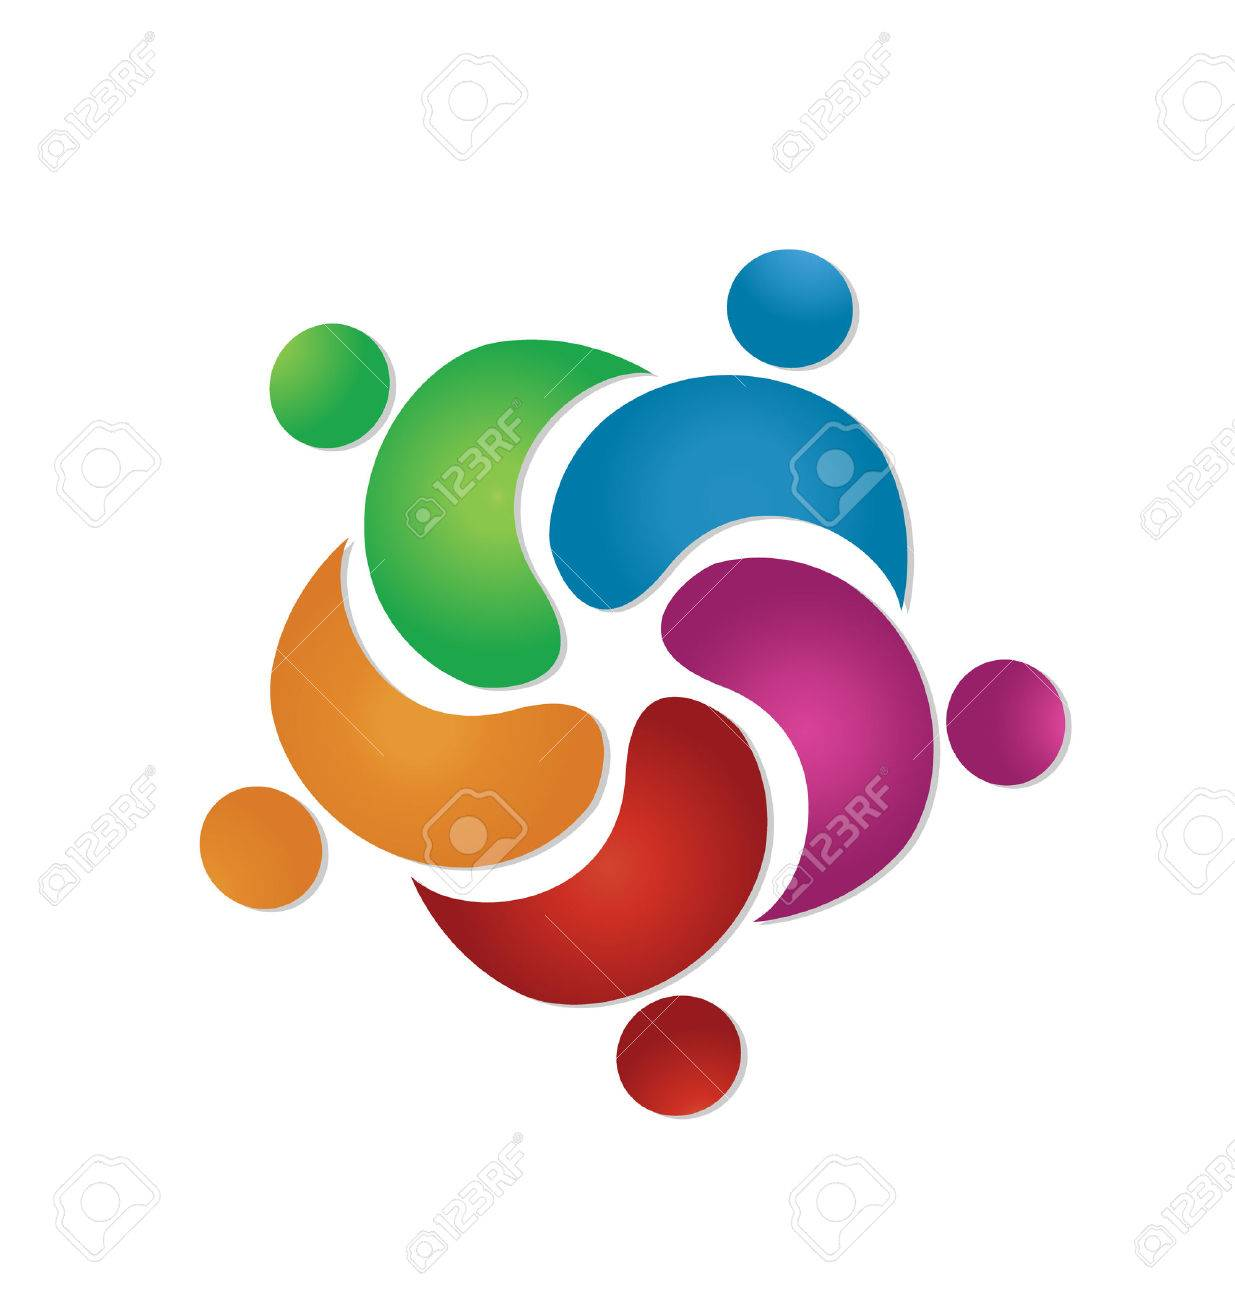 Teamwork friendship 5 people icon vector Stock Vector - 23321889